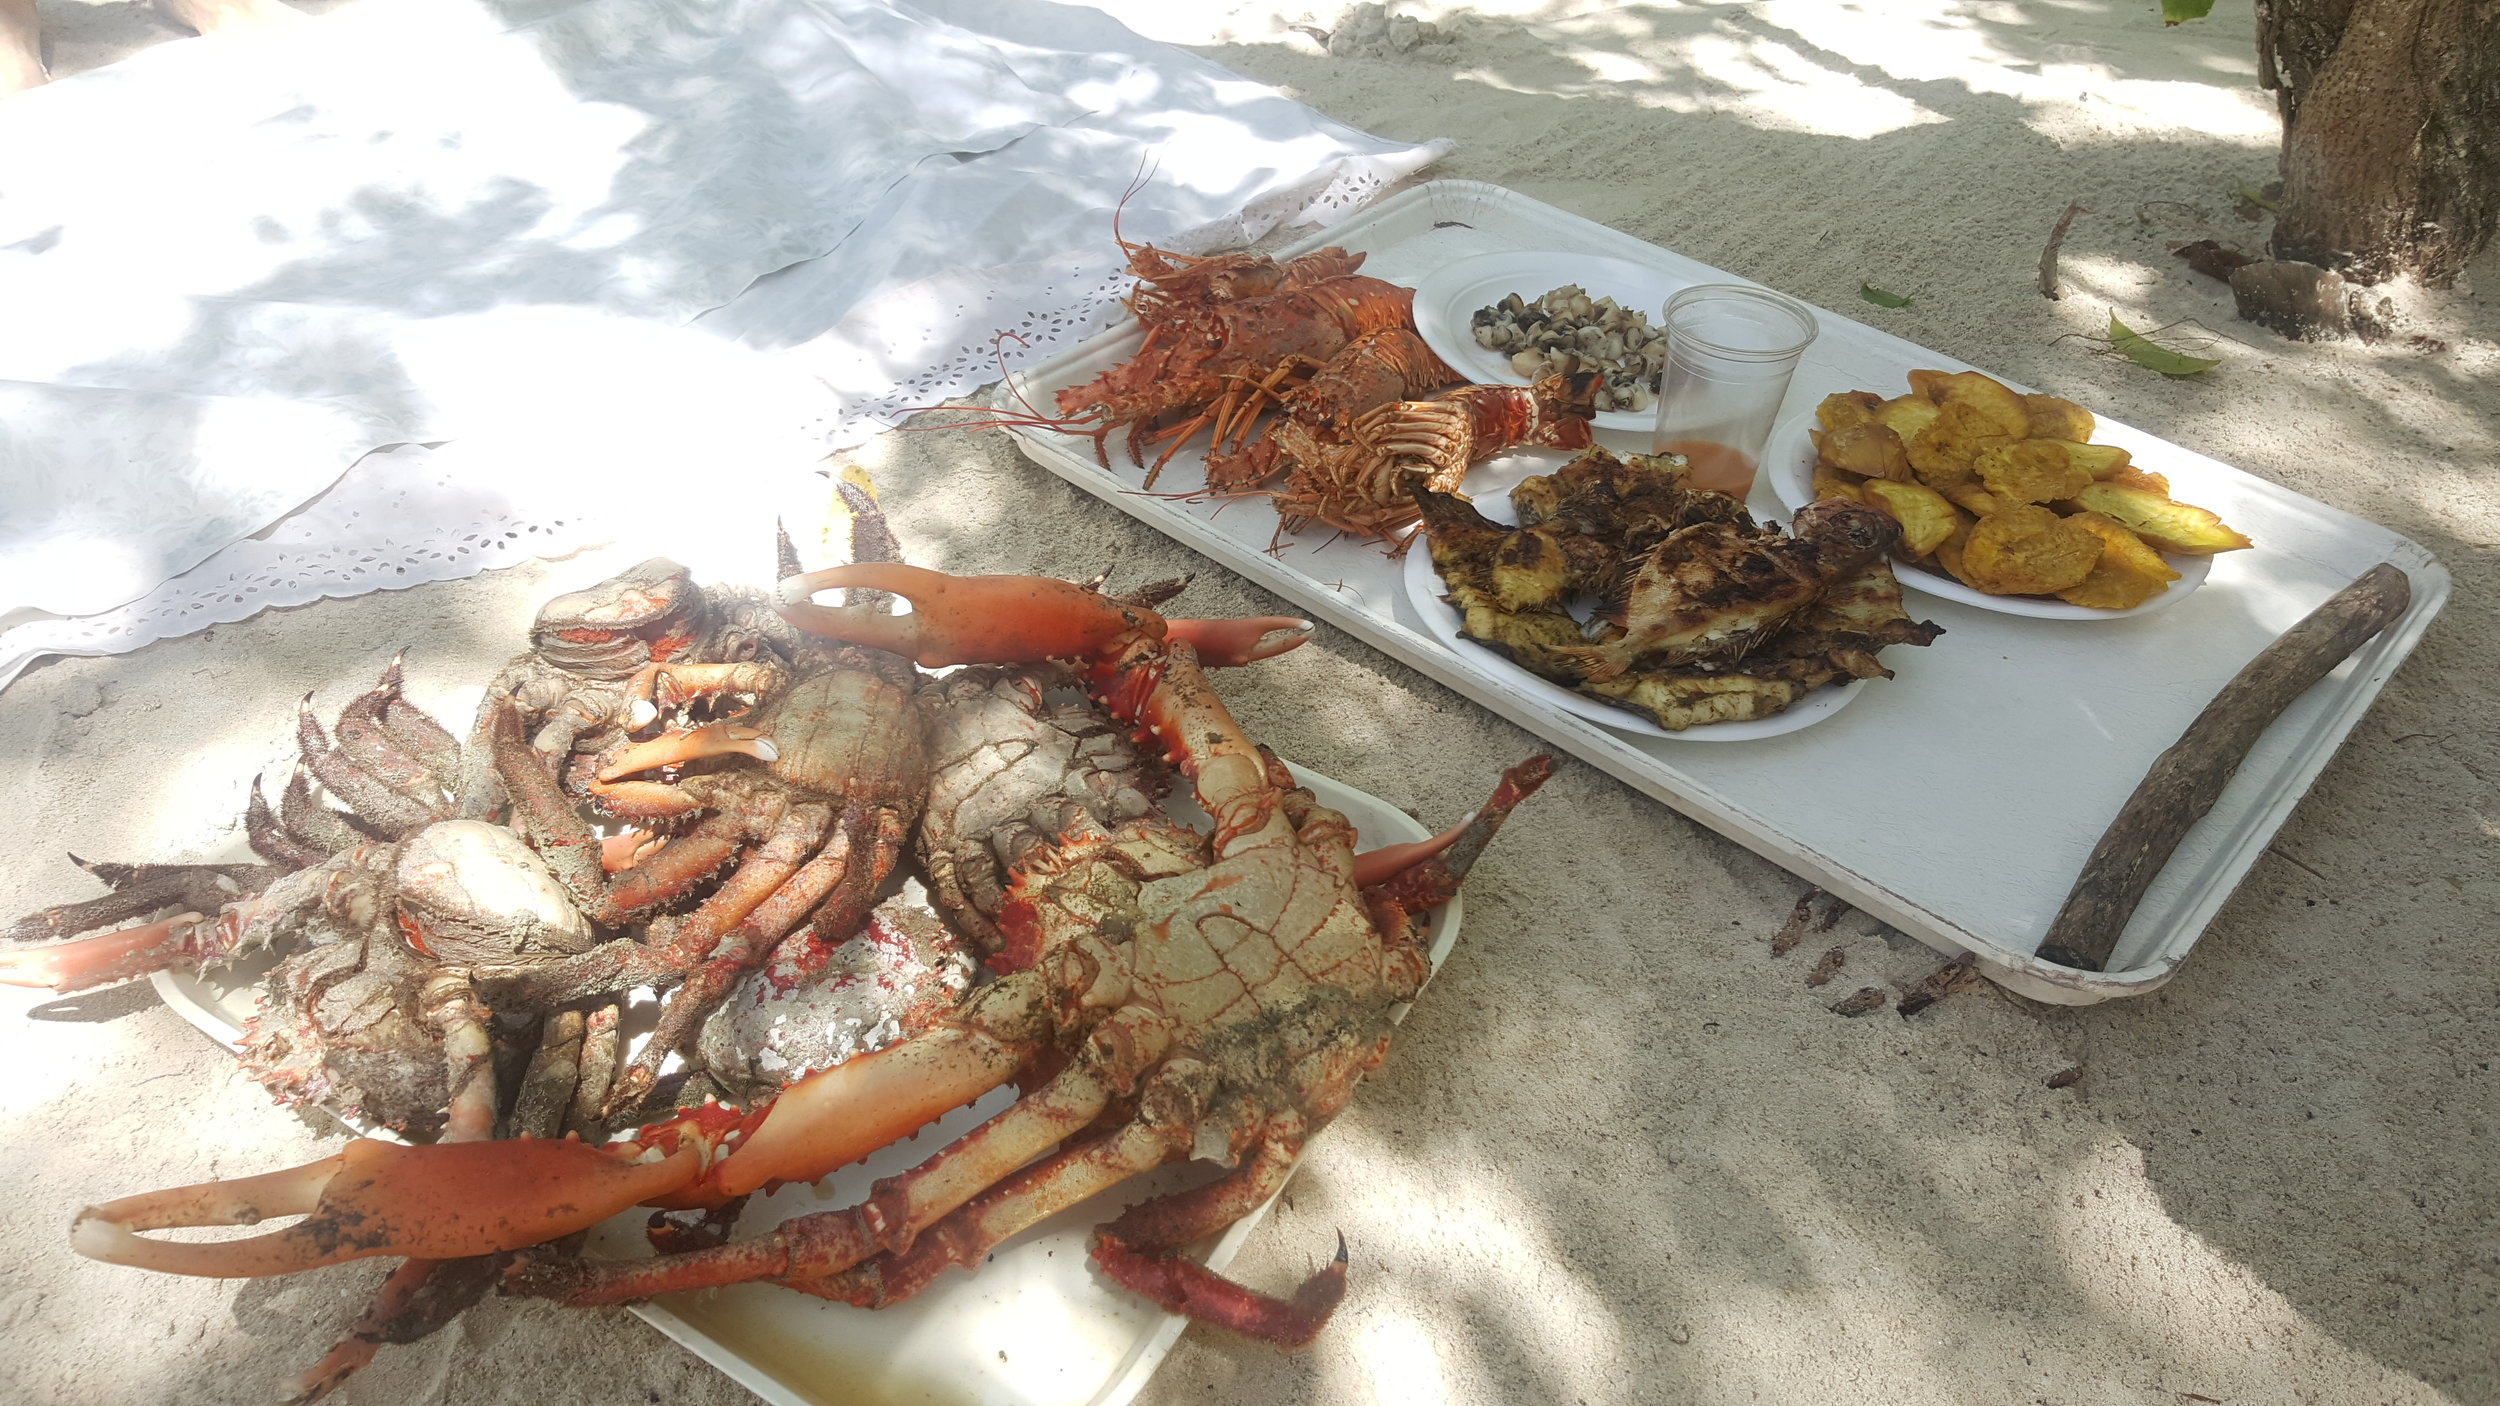 Lunch is ready!  We used a stick and a rock to crack open the crab legs and lobster tails.  They used a very spicy Haitian sauce on the conch which was tasty.  It was very simple - pure seafood, no frills!  Our favorites were the eel and crab.